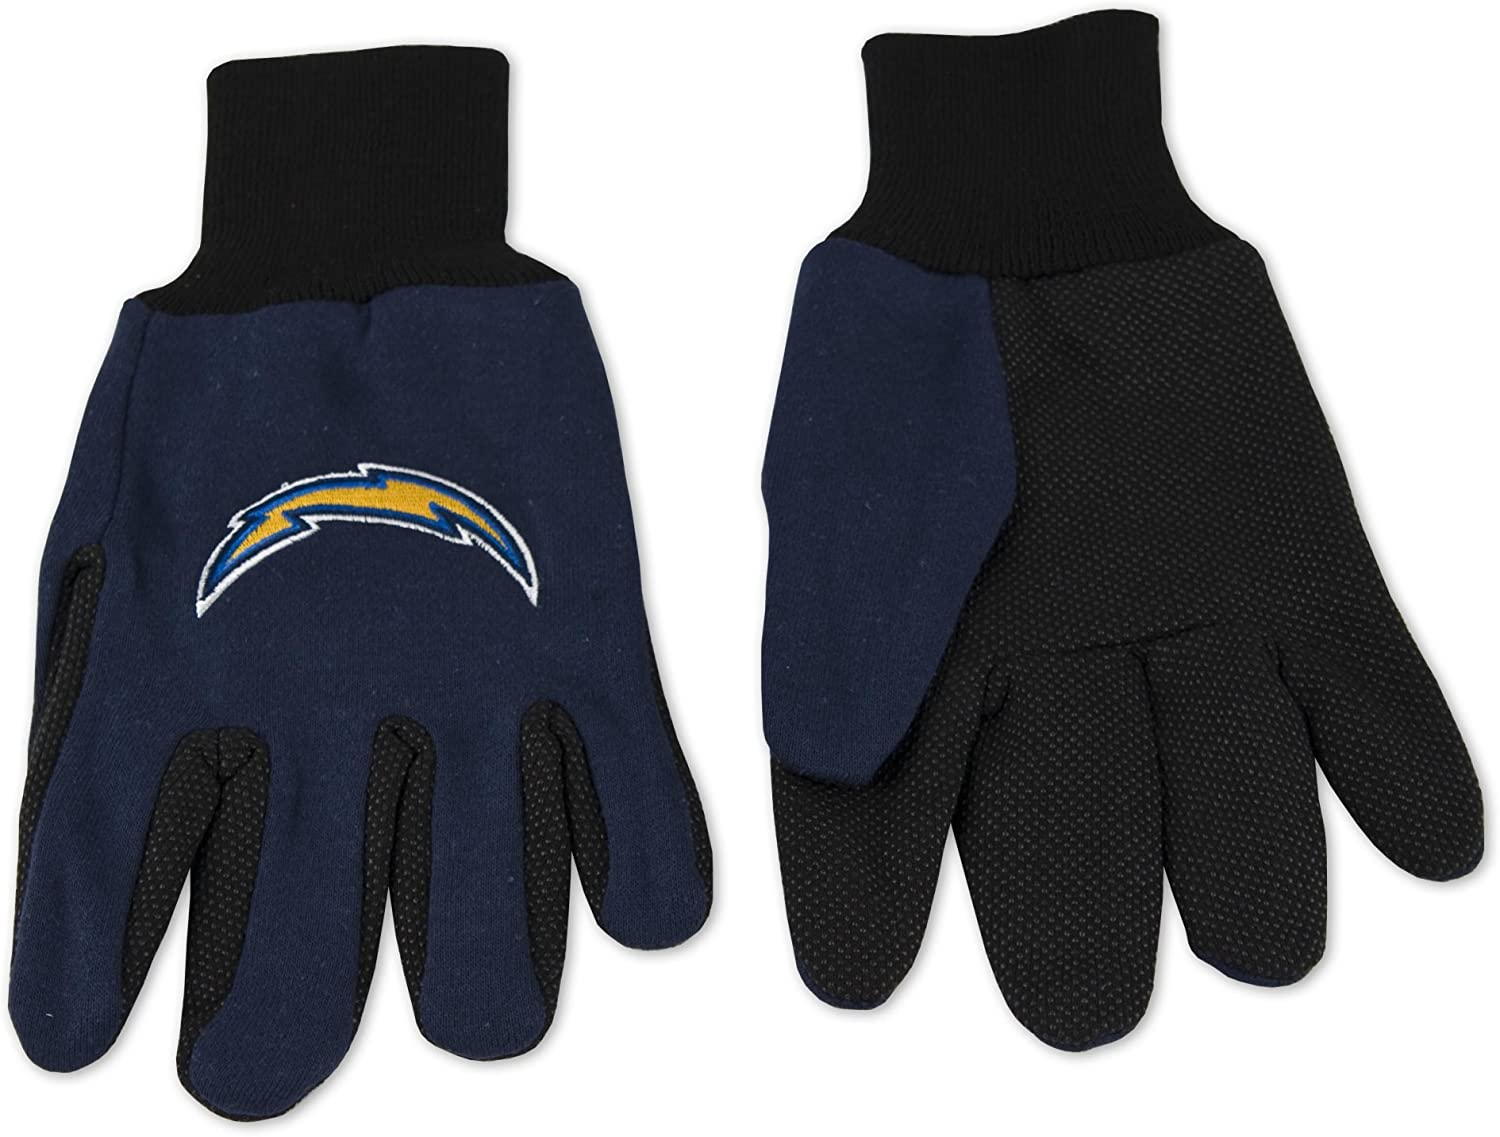 Wincraft NFL Two-Tone Gloves